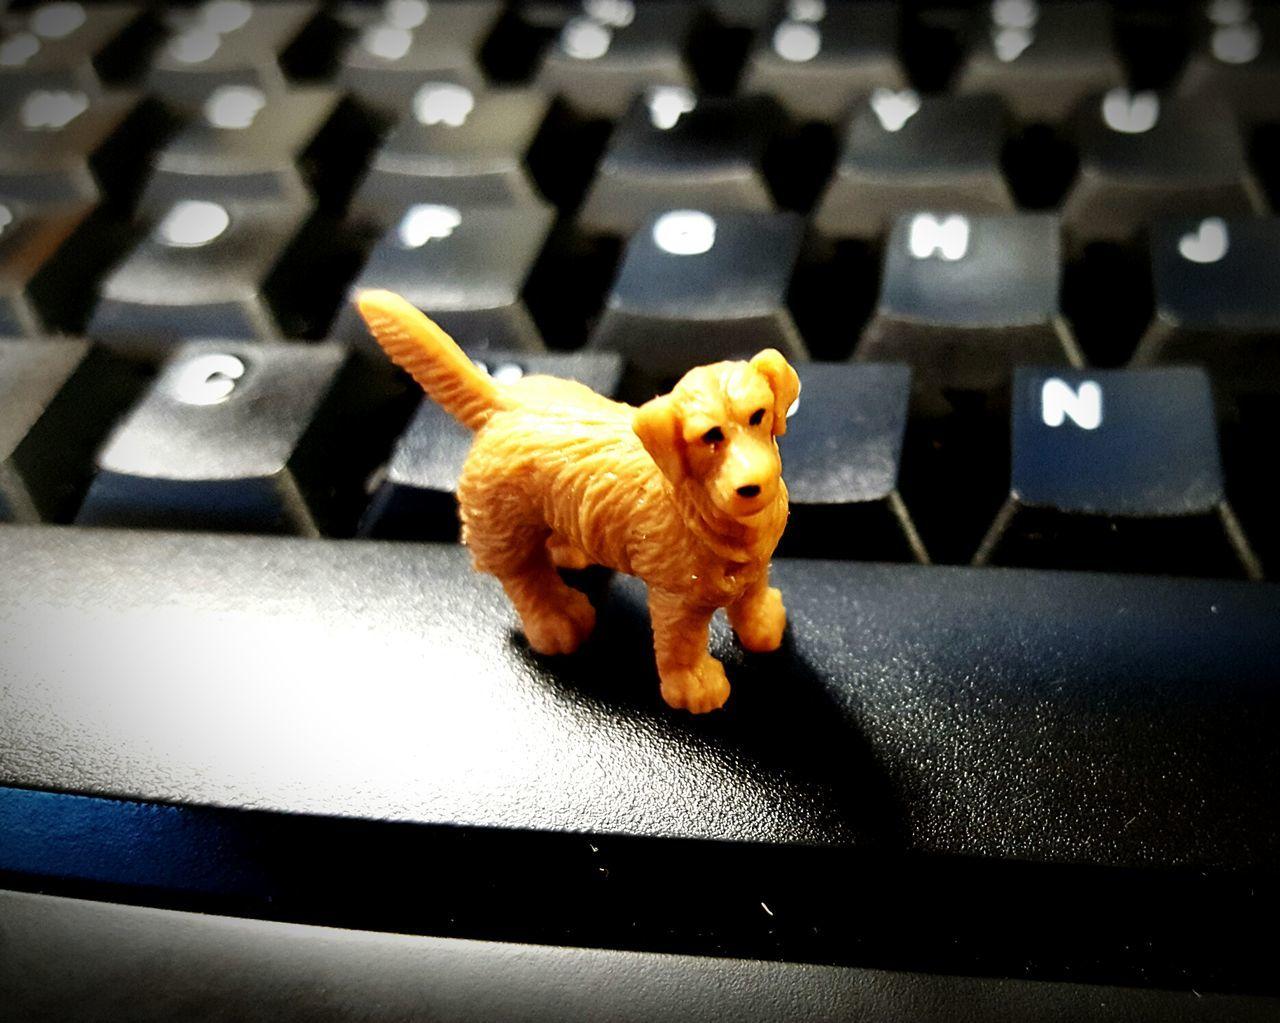 Just a little bit of fun One Animal Dog Pets Animal Themes Animal No People Mammal Office Keyboard Fun Miniture Cellphone Photography Close Up